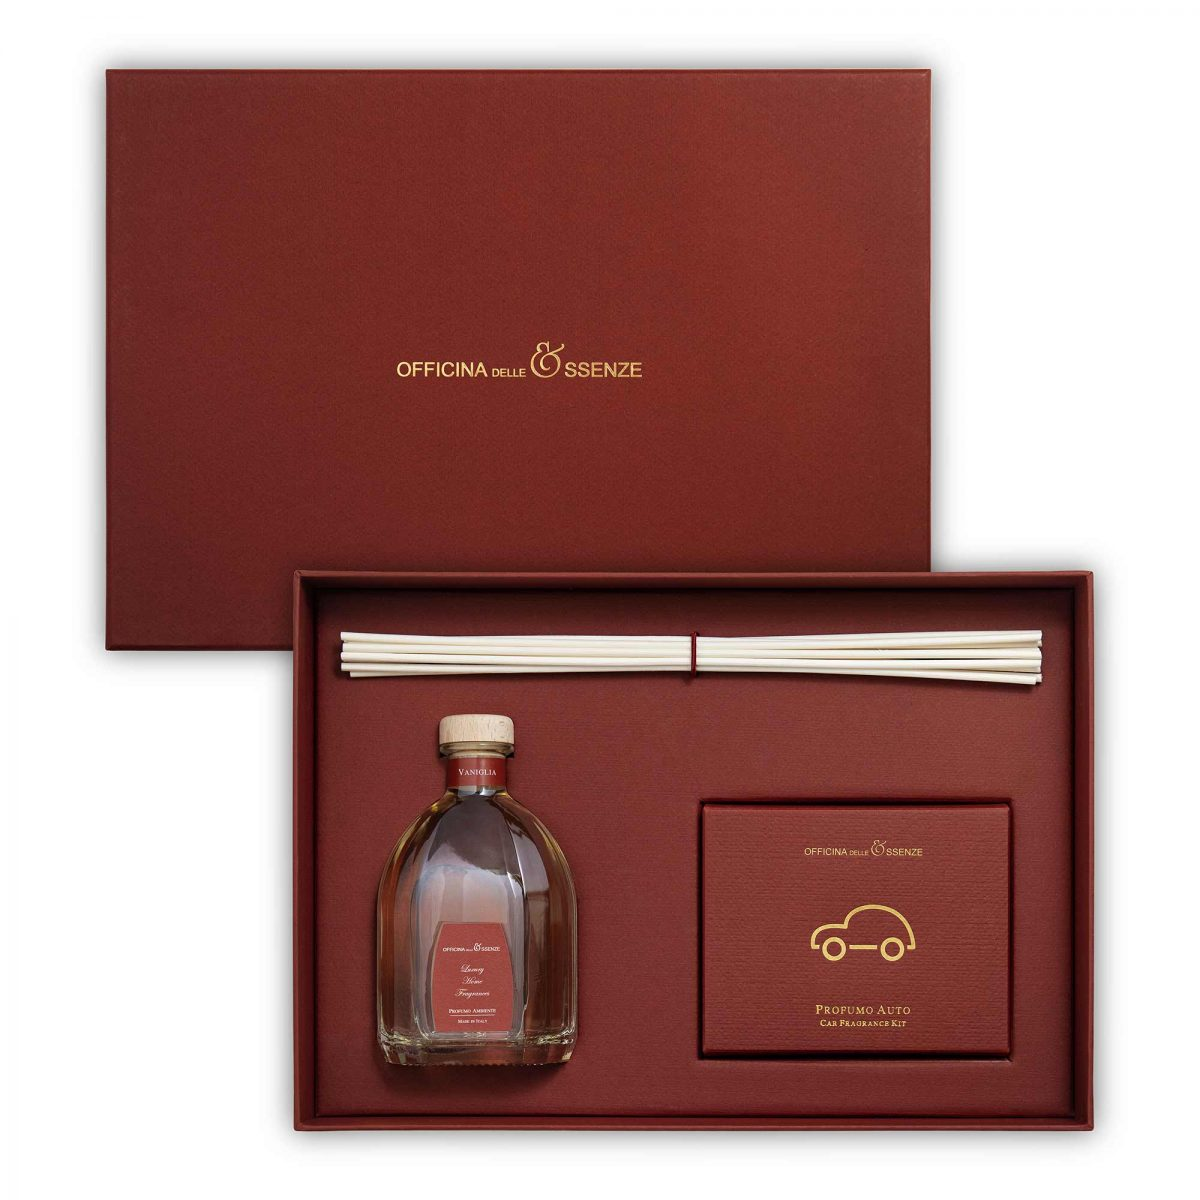 The gift box contains a 250 ml Home reed Diffuser and a Car Fragrance Kit